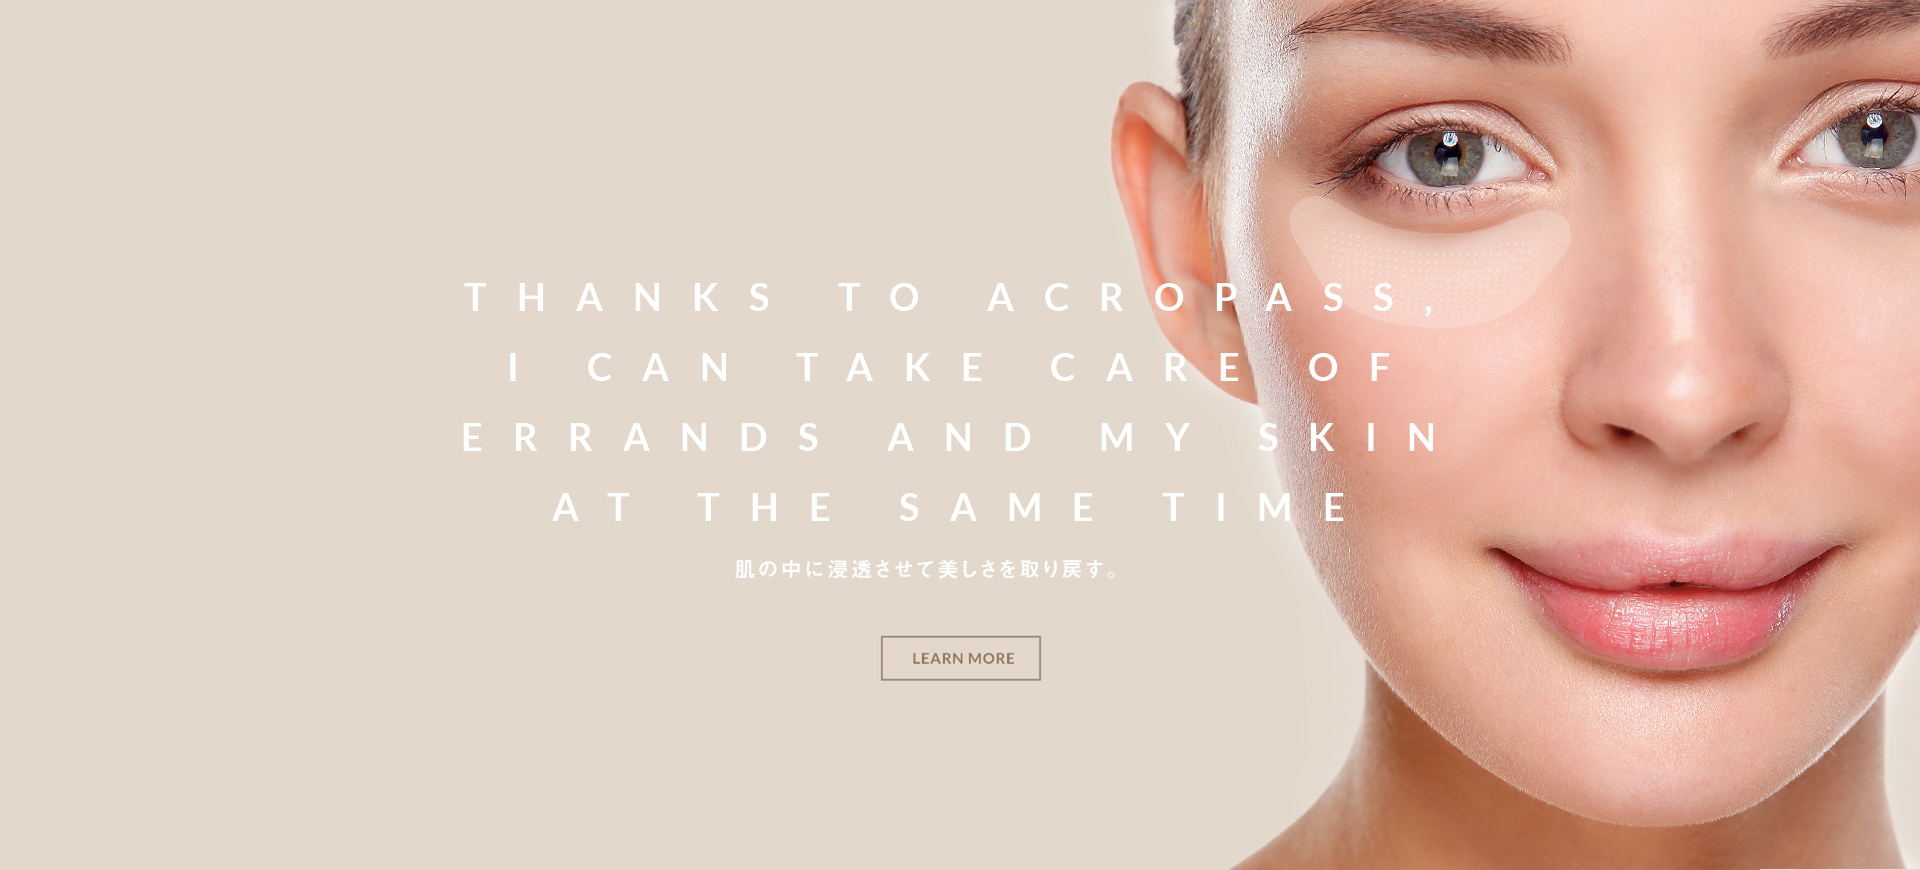 thanks to acropass,i can take care of errands and my skin at the same time - 肌の中に浸透させて美しさを取り戻す。